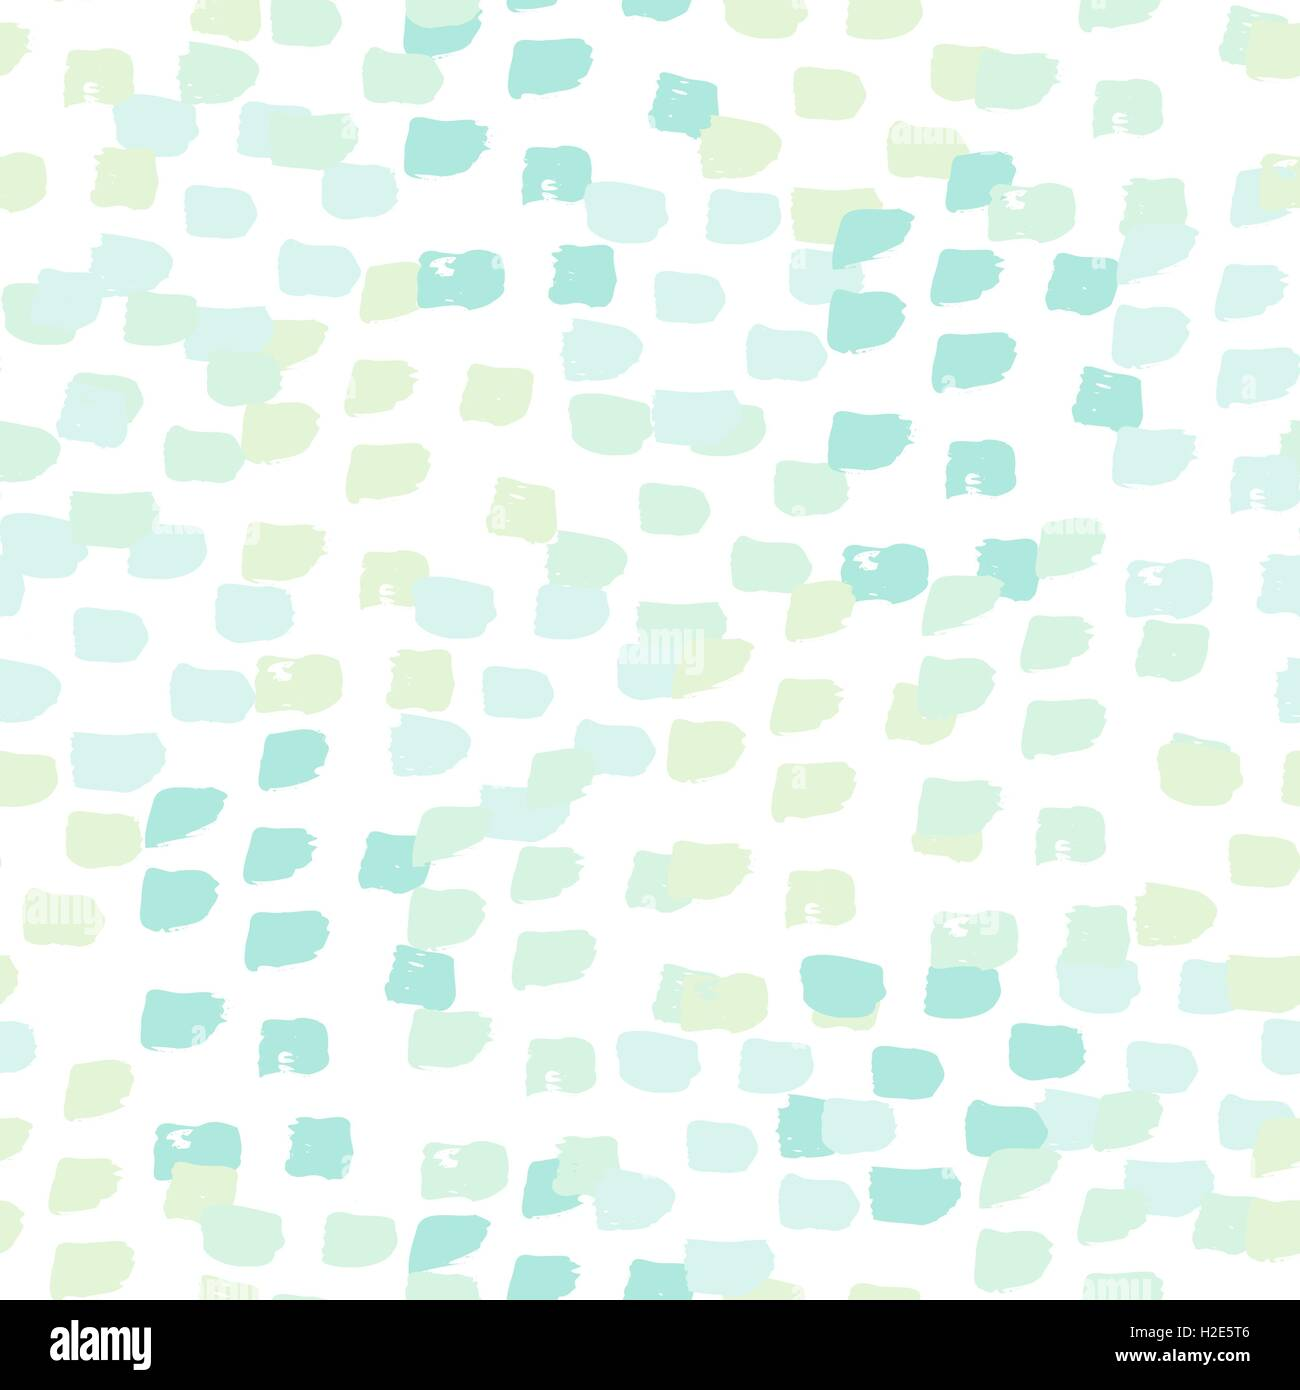 Hand Painted Brush Strokes In Light Blue Mint Green And Turquoise